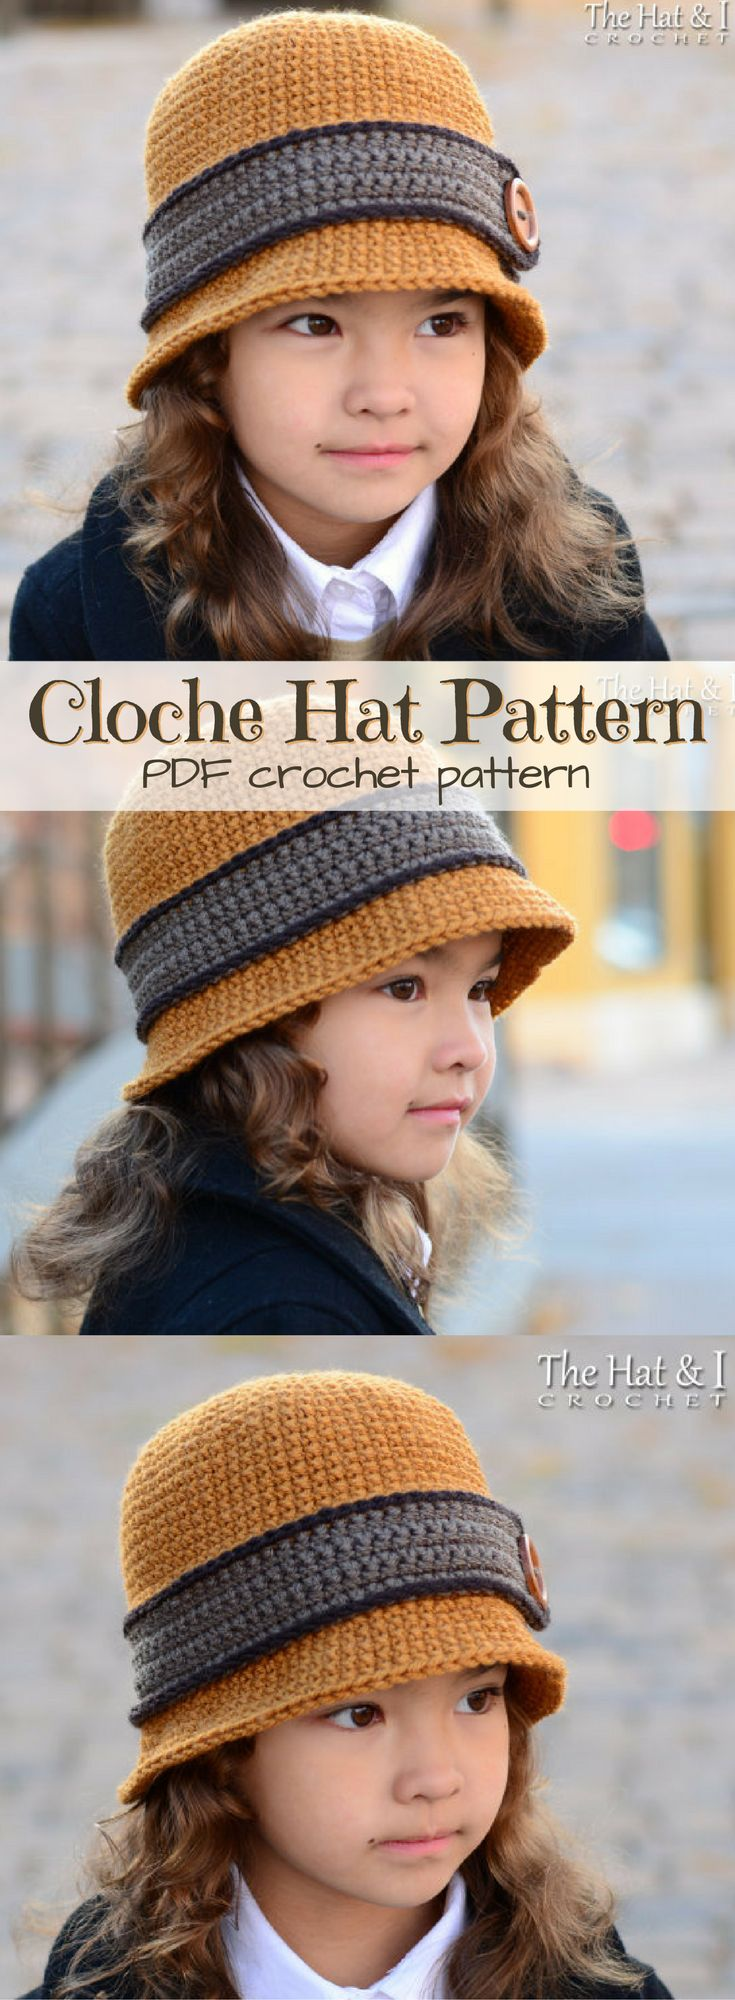 Such a cute hat pattern! Classic Cloche Hat for girls, or fold the rim and it's a bowler hat for boys! So fantastic! What a great idea! Can be made in sizes infant to adult! #etsy  #ad #pdf #crochet #pattern #instant #download #printable